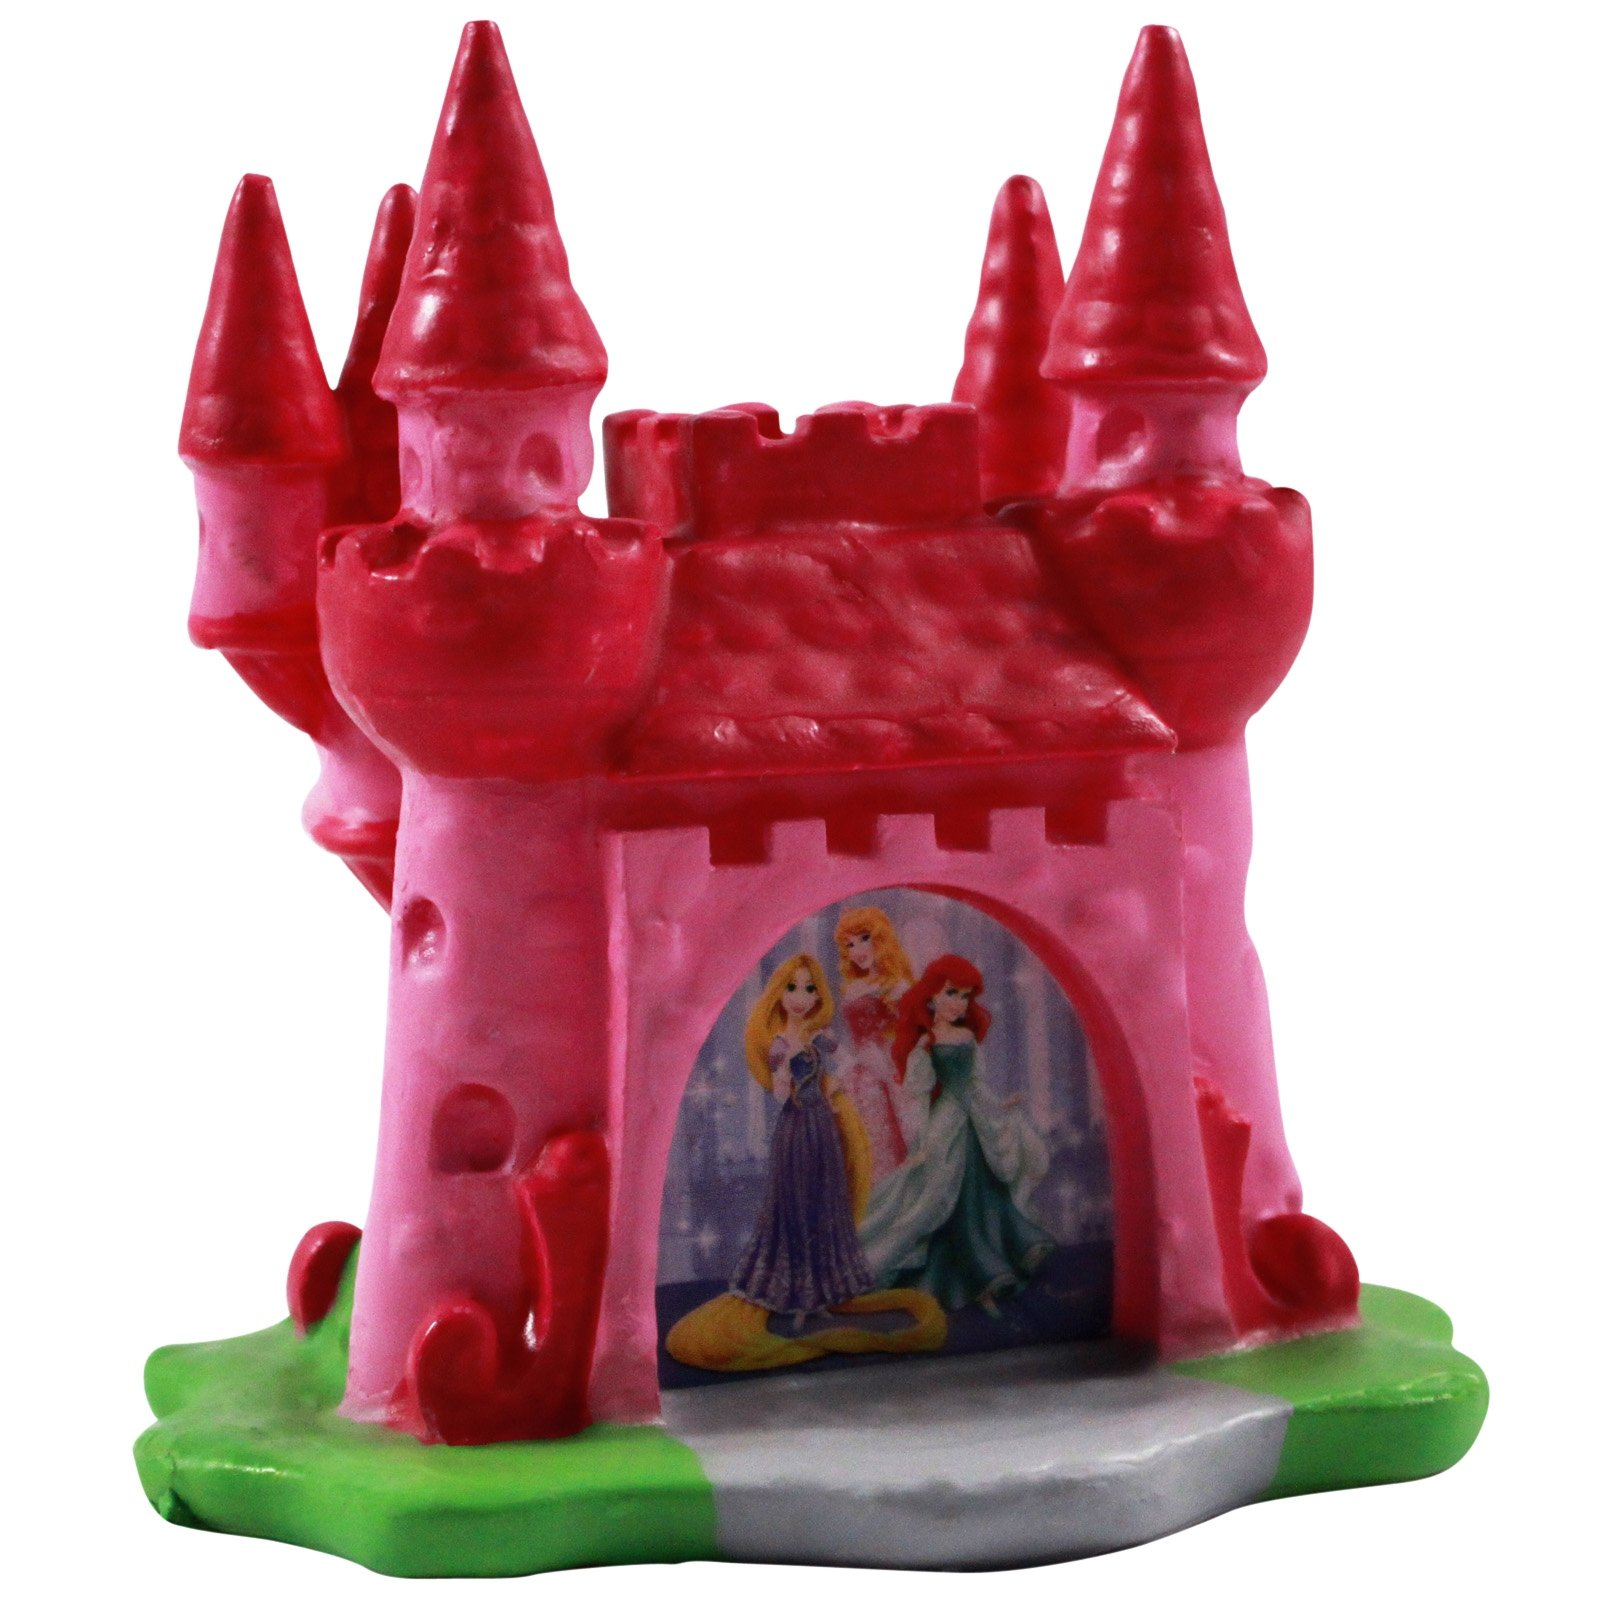 Officially Licensed Disney Princess 3D Castle Candle Holder with Candle Set